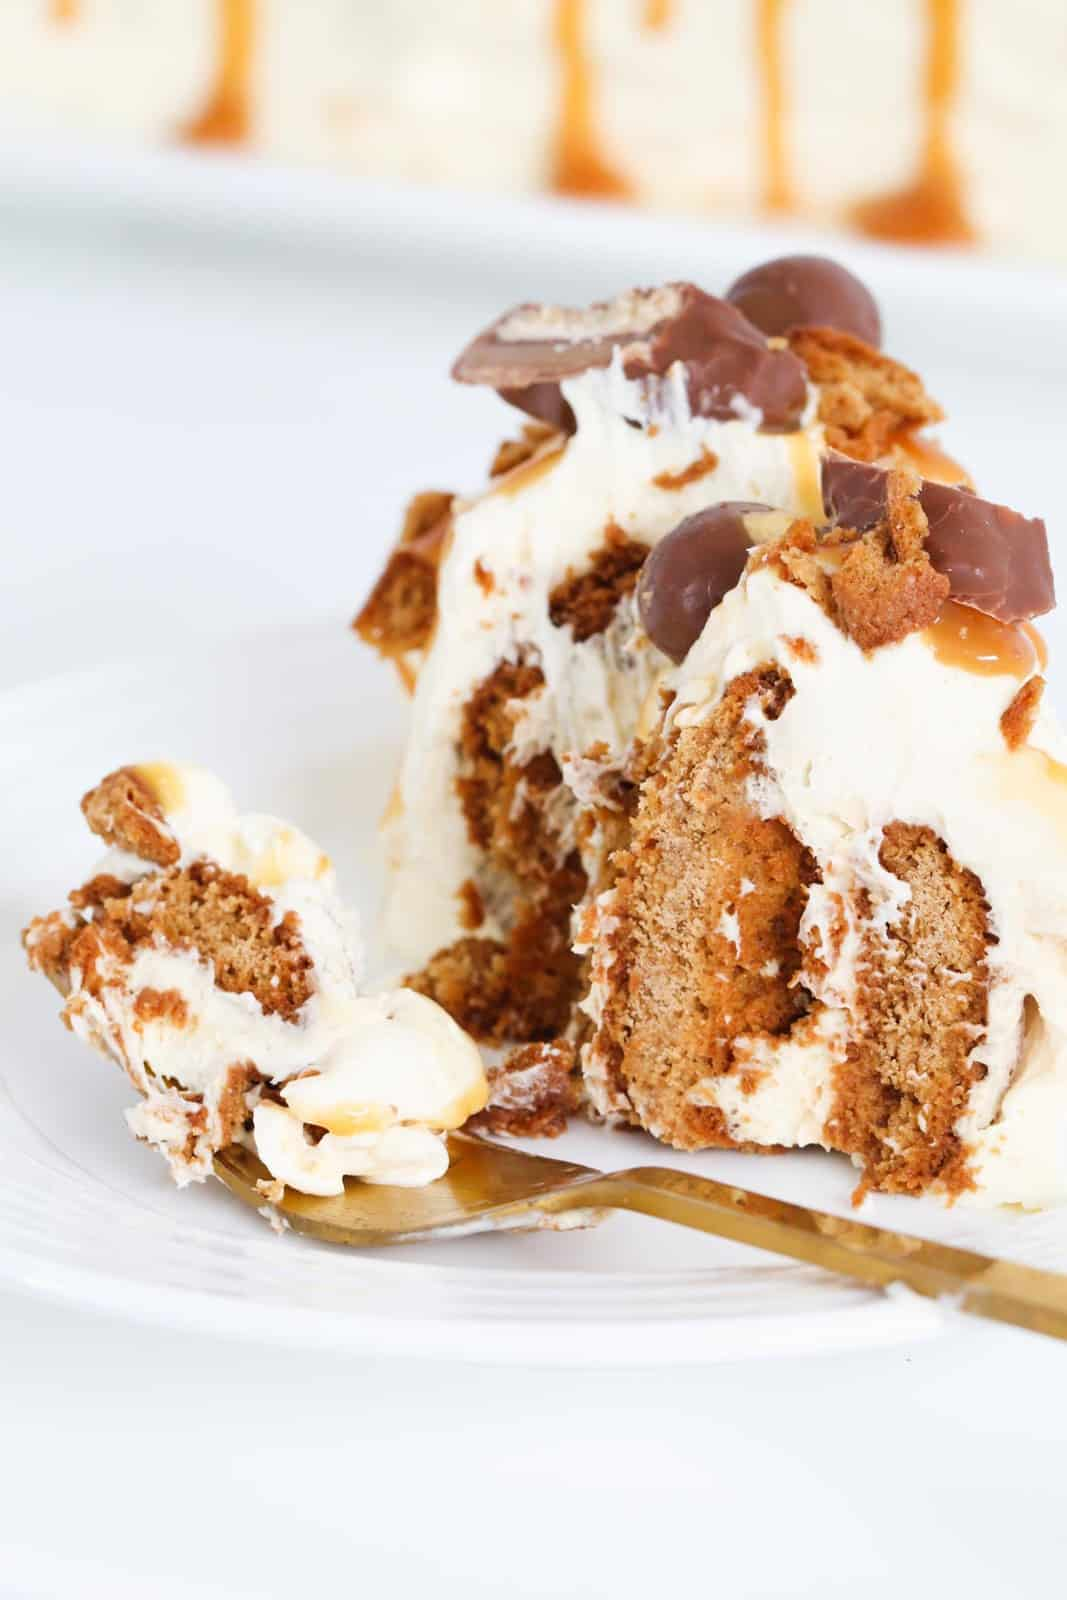 A forkful of gingernut log with whipped cream.